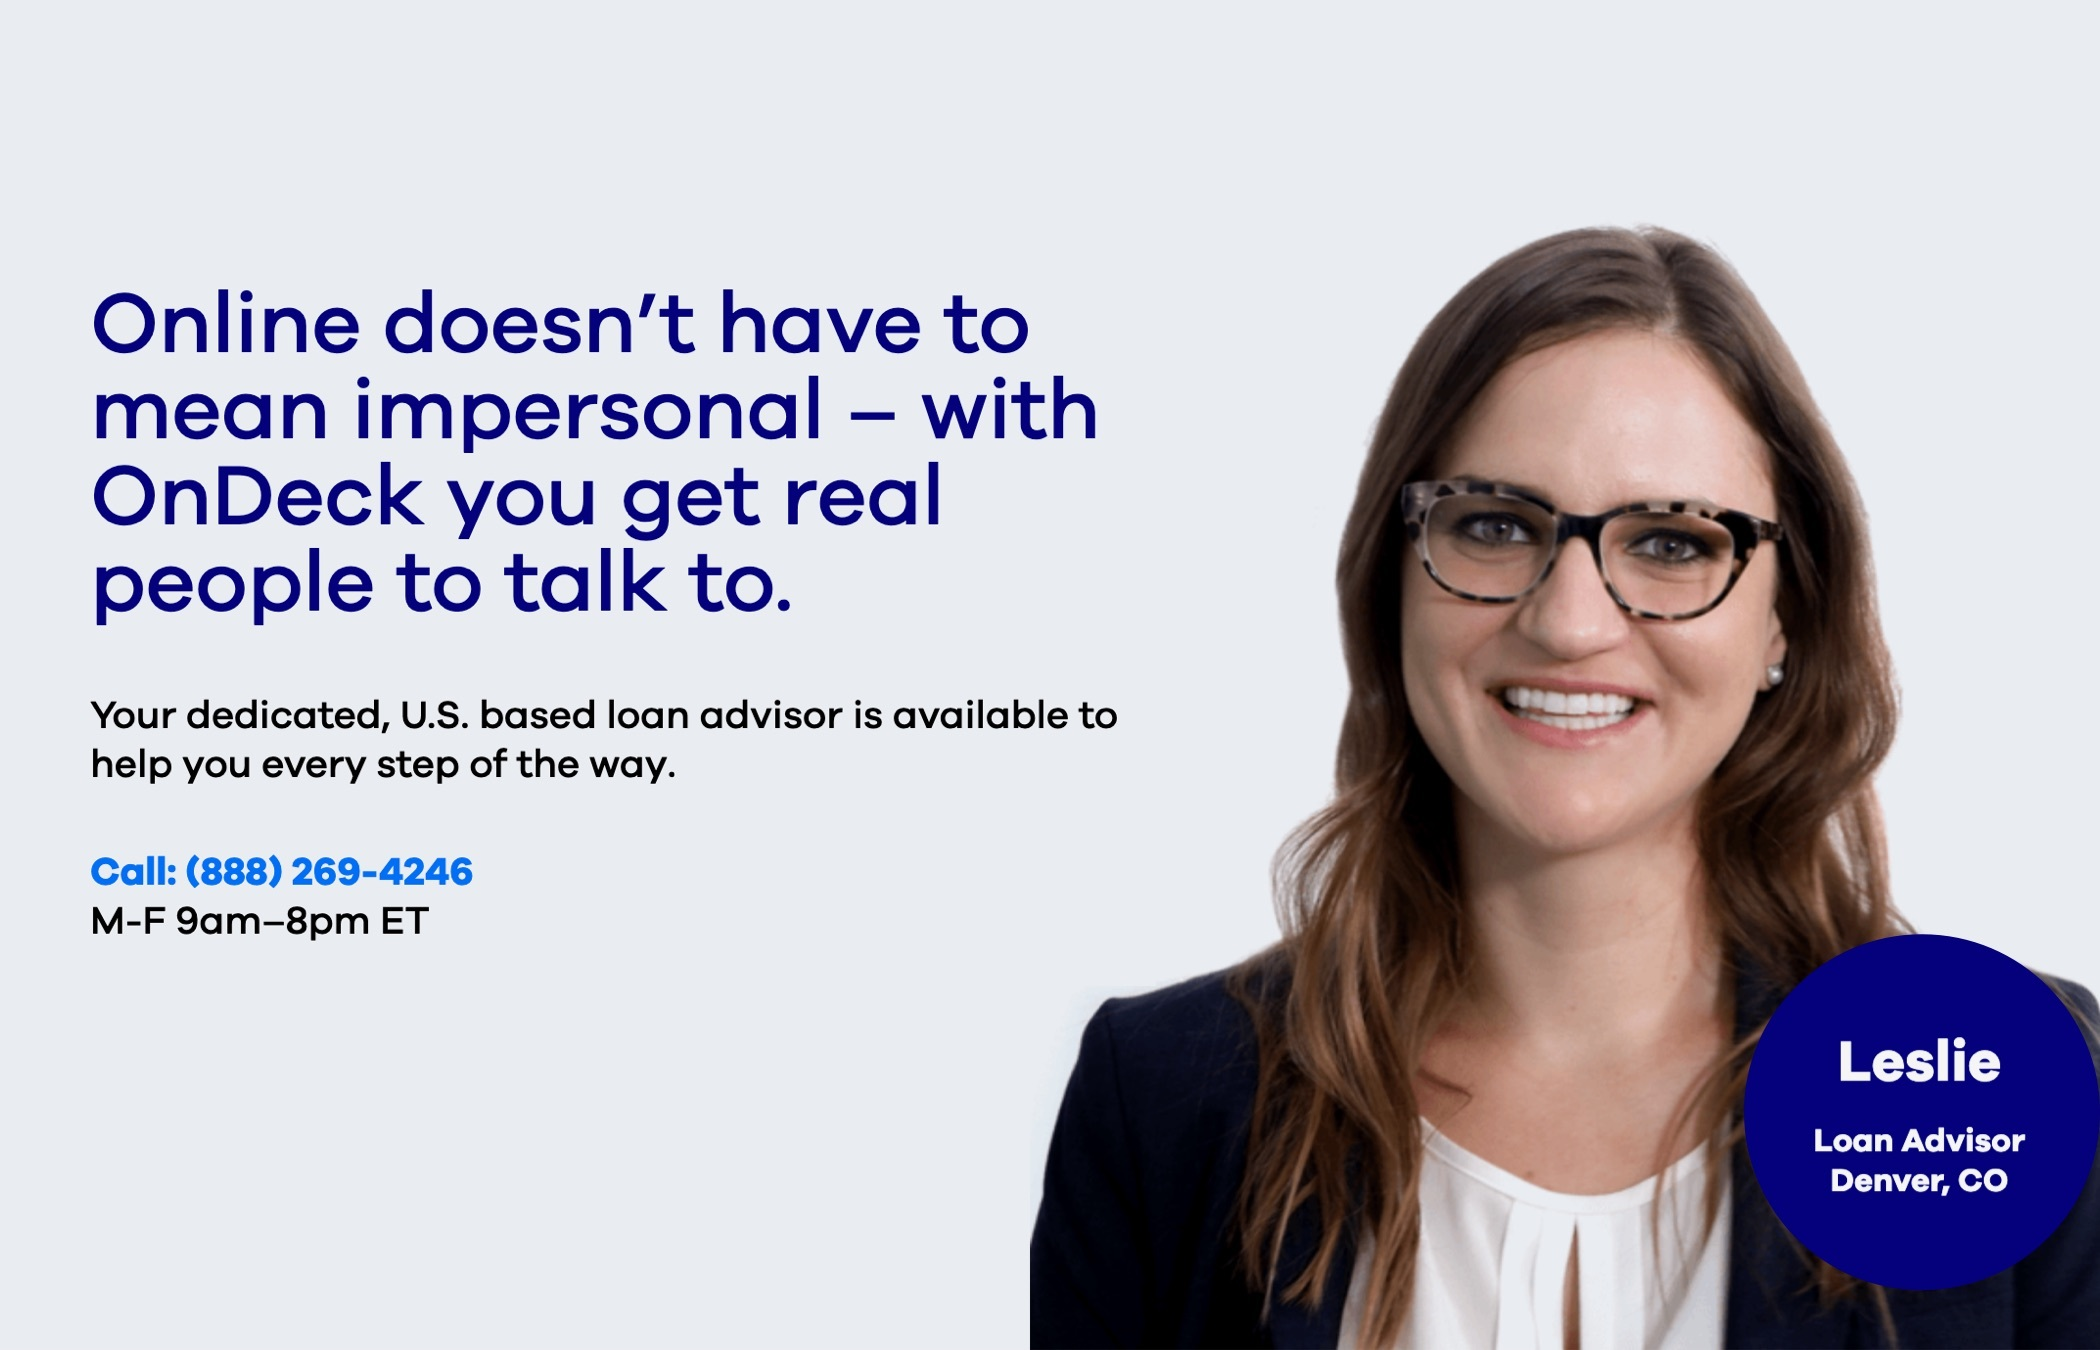 A photo of an OnDeck loan advisor, with the text: Online doesn't have to be impersonal. With OnDeck, you get real people to talk to.